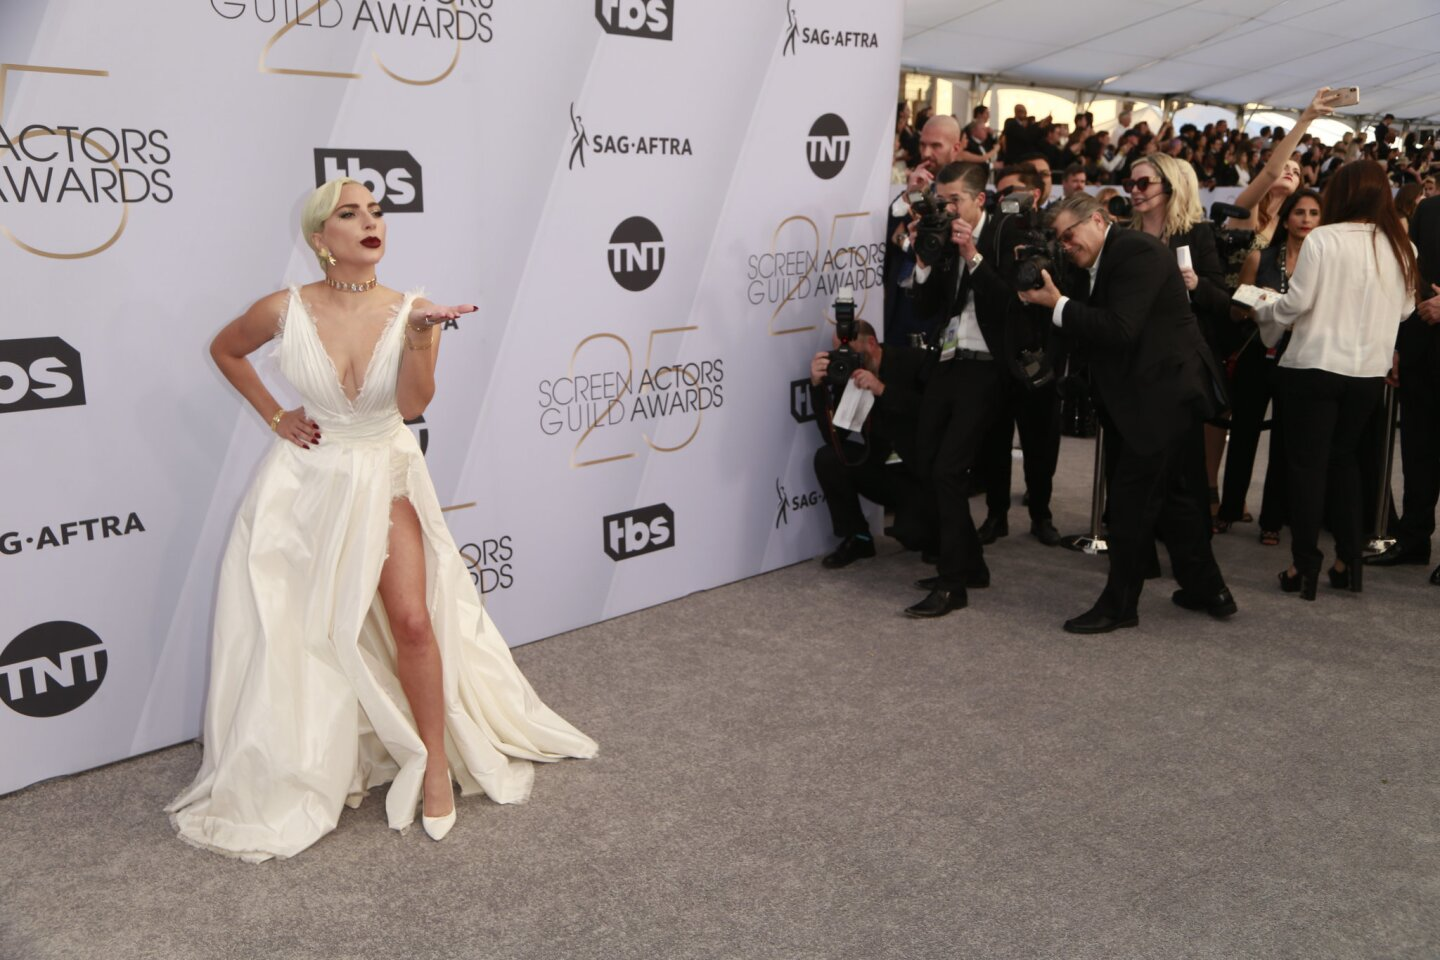 Lady Gaga attends the 25th Screen Actors Guild Awards at the Shrine Auditorium in Los Angeles.